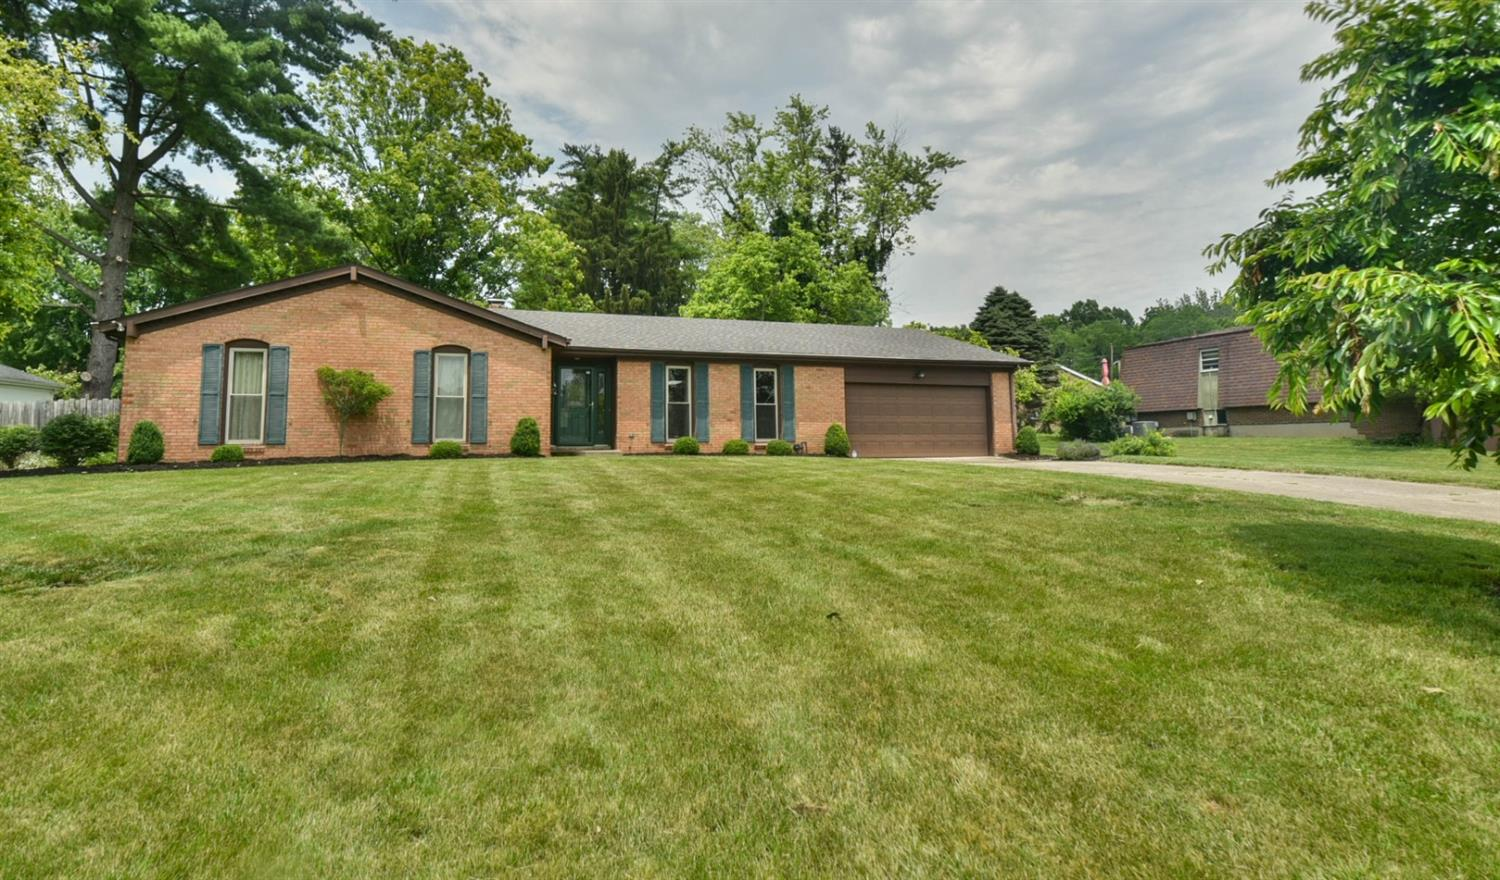 Fantastic brick ranch with open floor plan! Updated kitchen and bathrooms. Thick plank hardwood floors. Partially finished basement and two car garage. New roof, newer AC and Furnace. Awesome above ground pool that can be removed by the seller if buyer doesn't want it. This is a beautiful home.